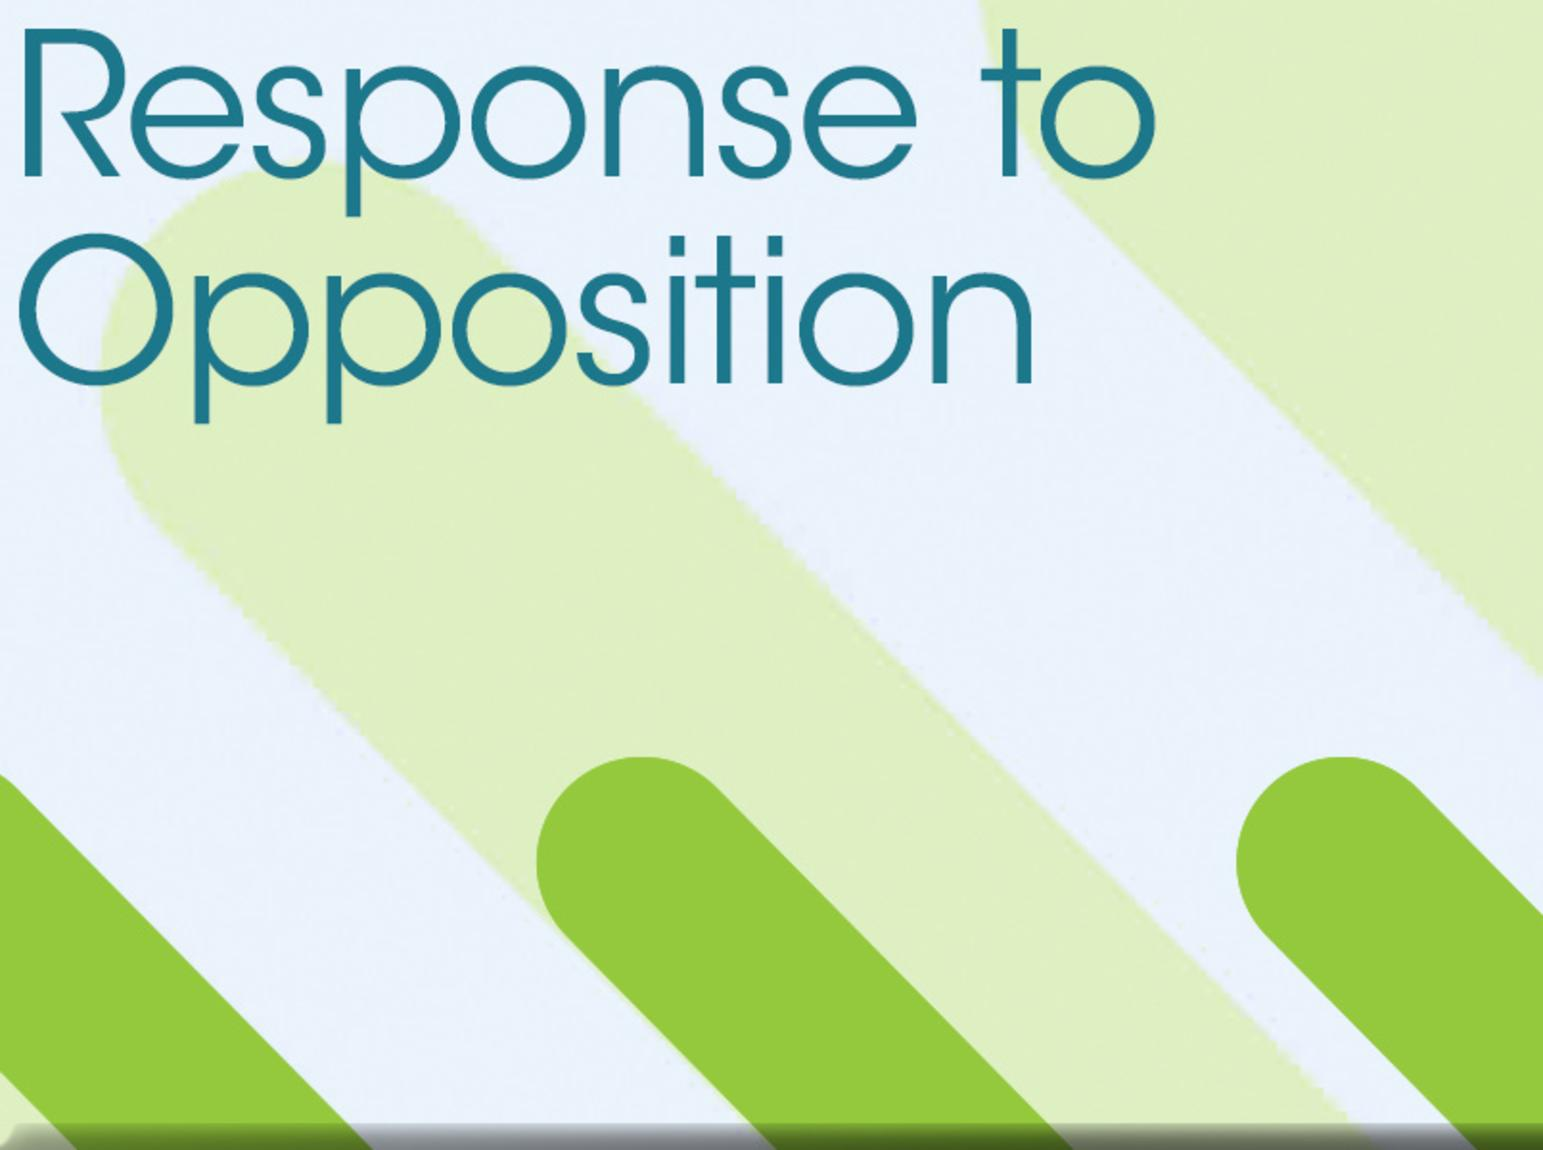 Response to Opposition